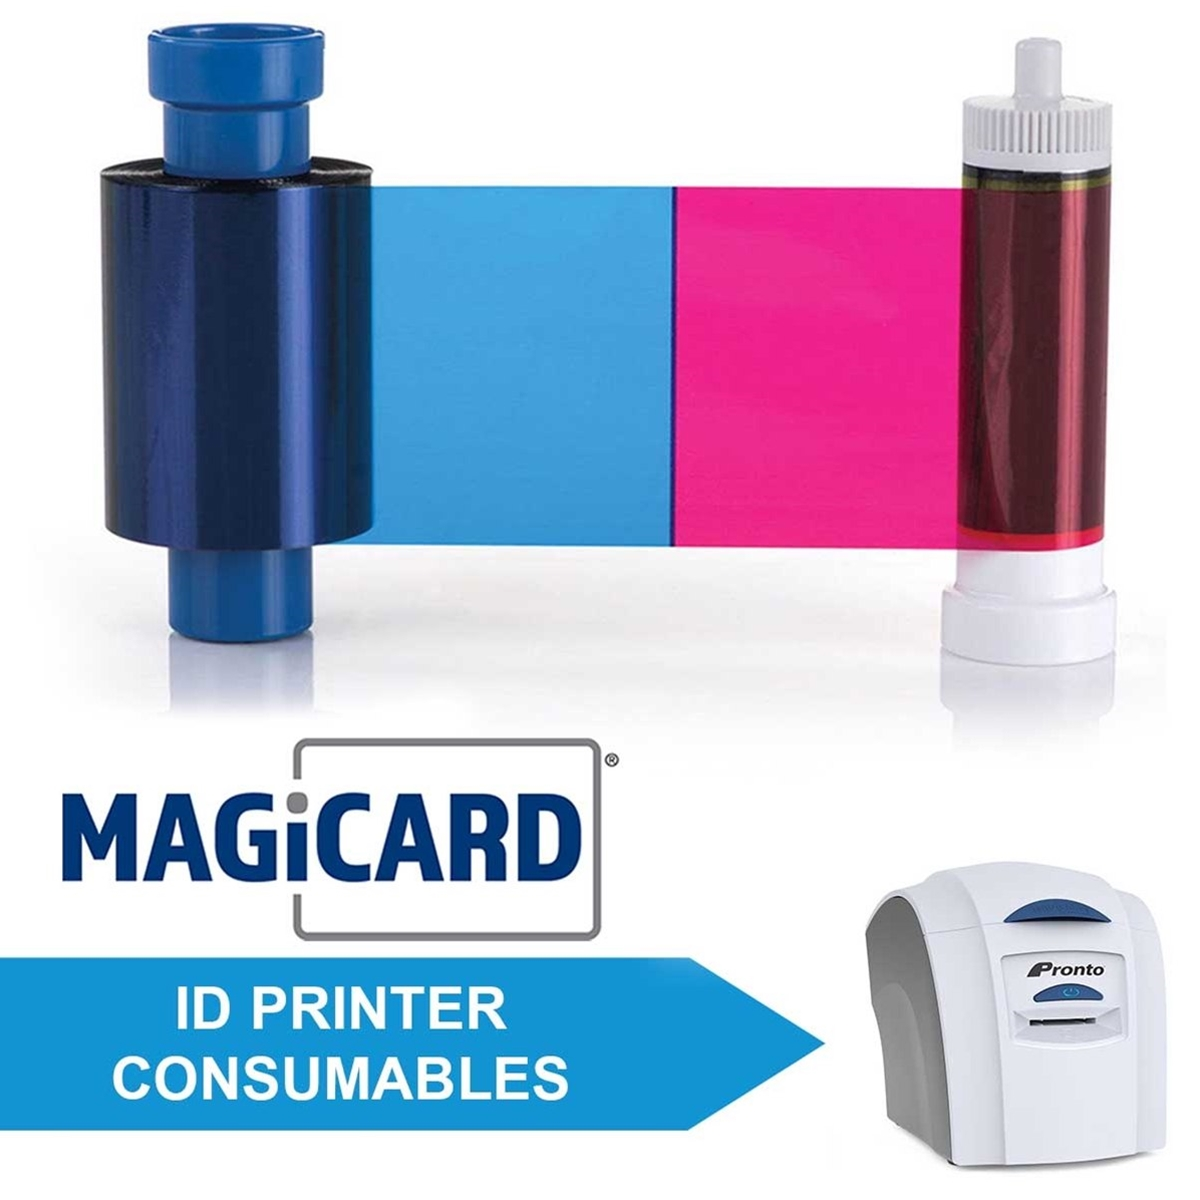 Consumables for Magicard Pronto ID Printers